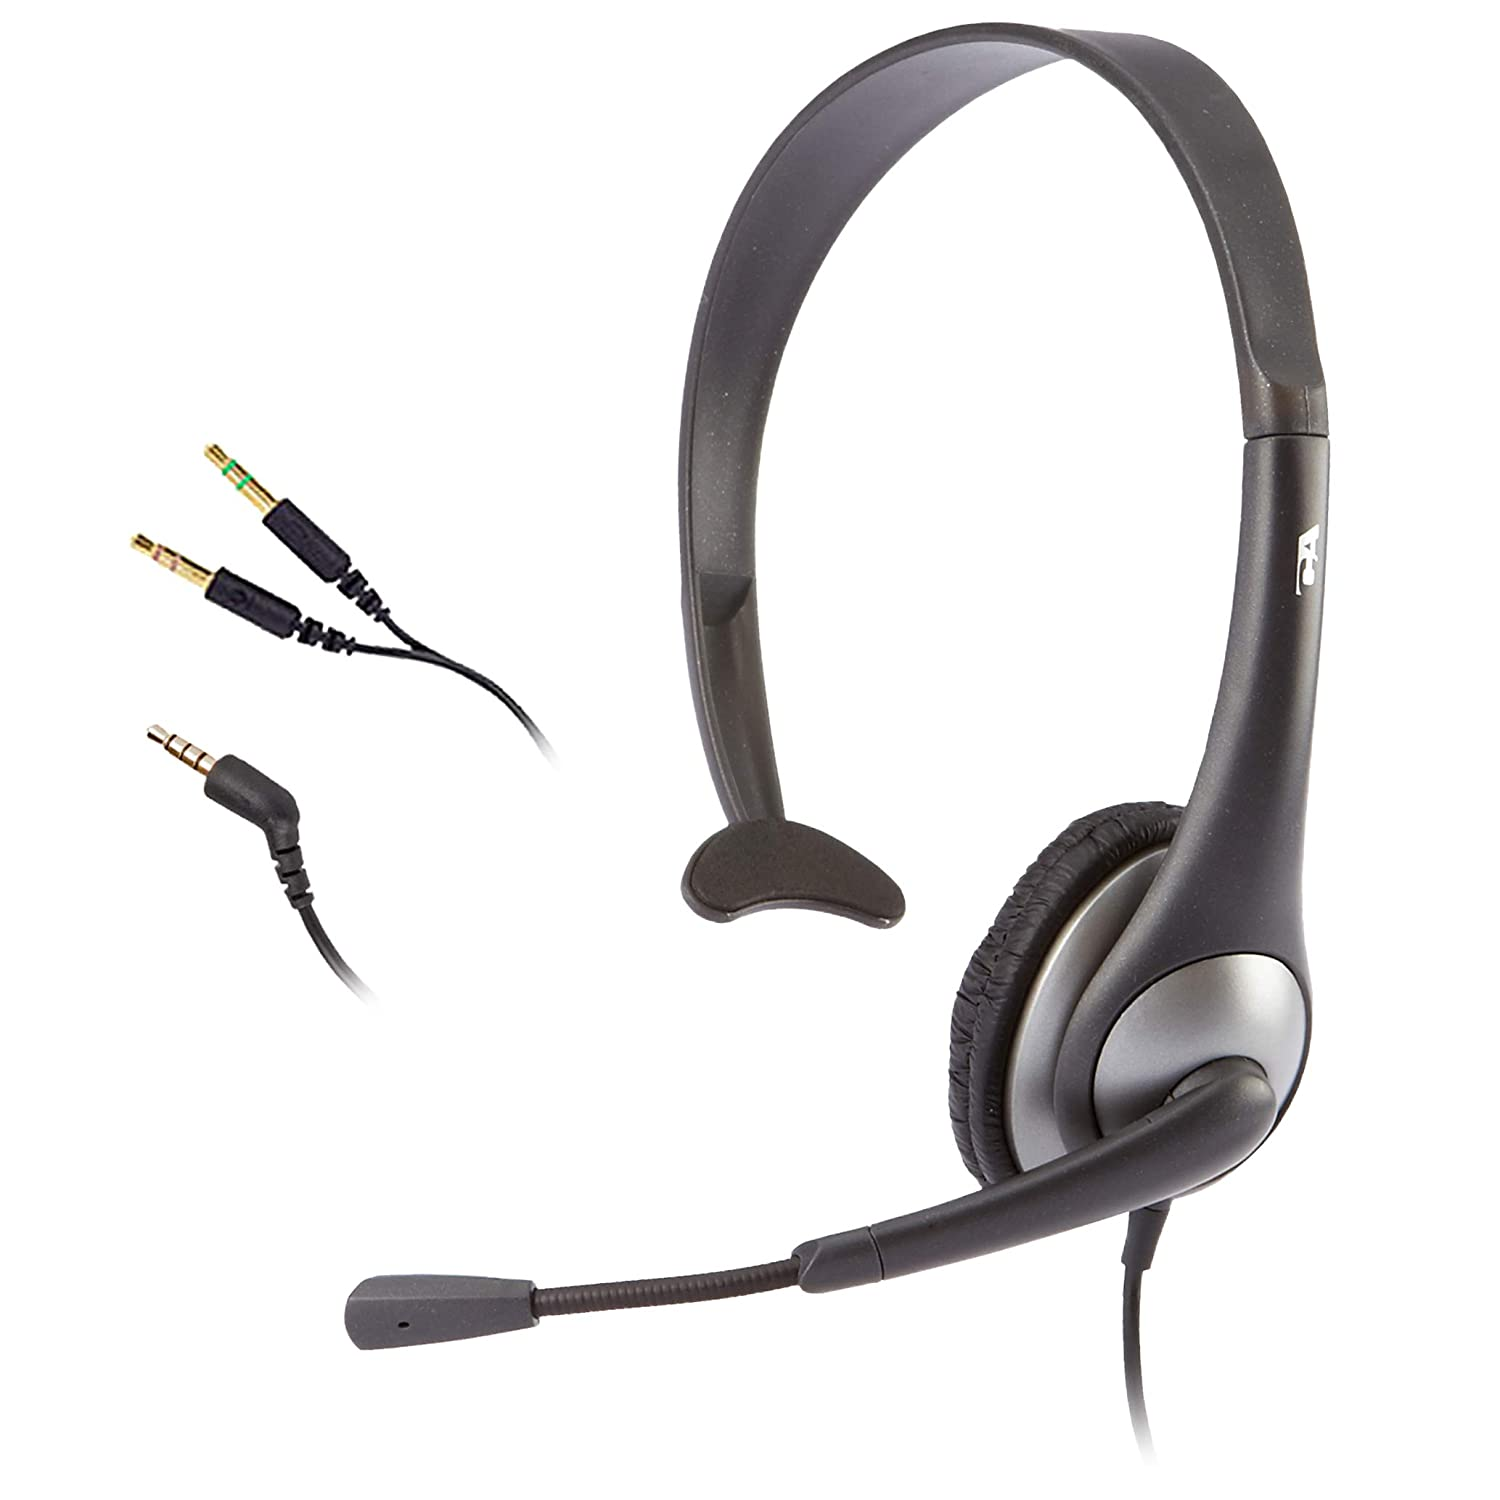 Cyber Acoustics Mono Headset, headphone with microphone, great for K12 School Classroom and Education (AC-104),Gray